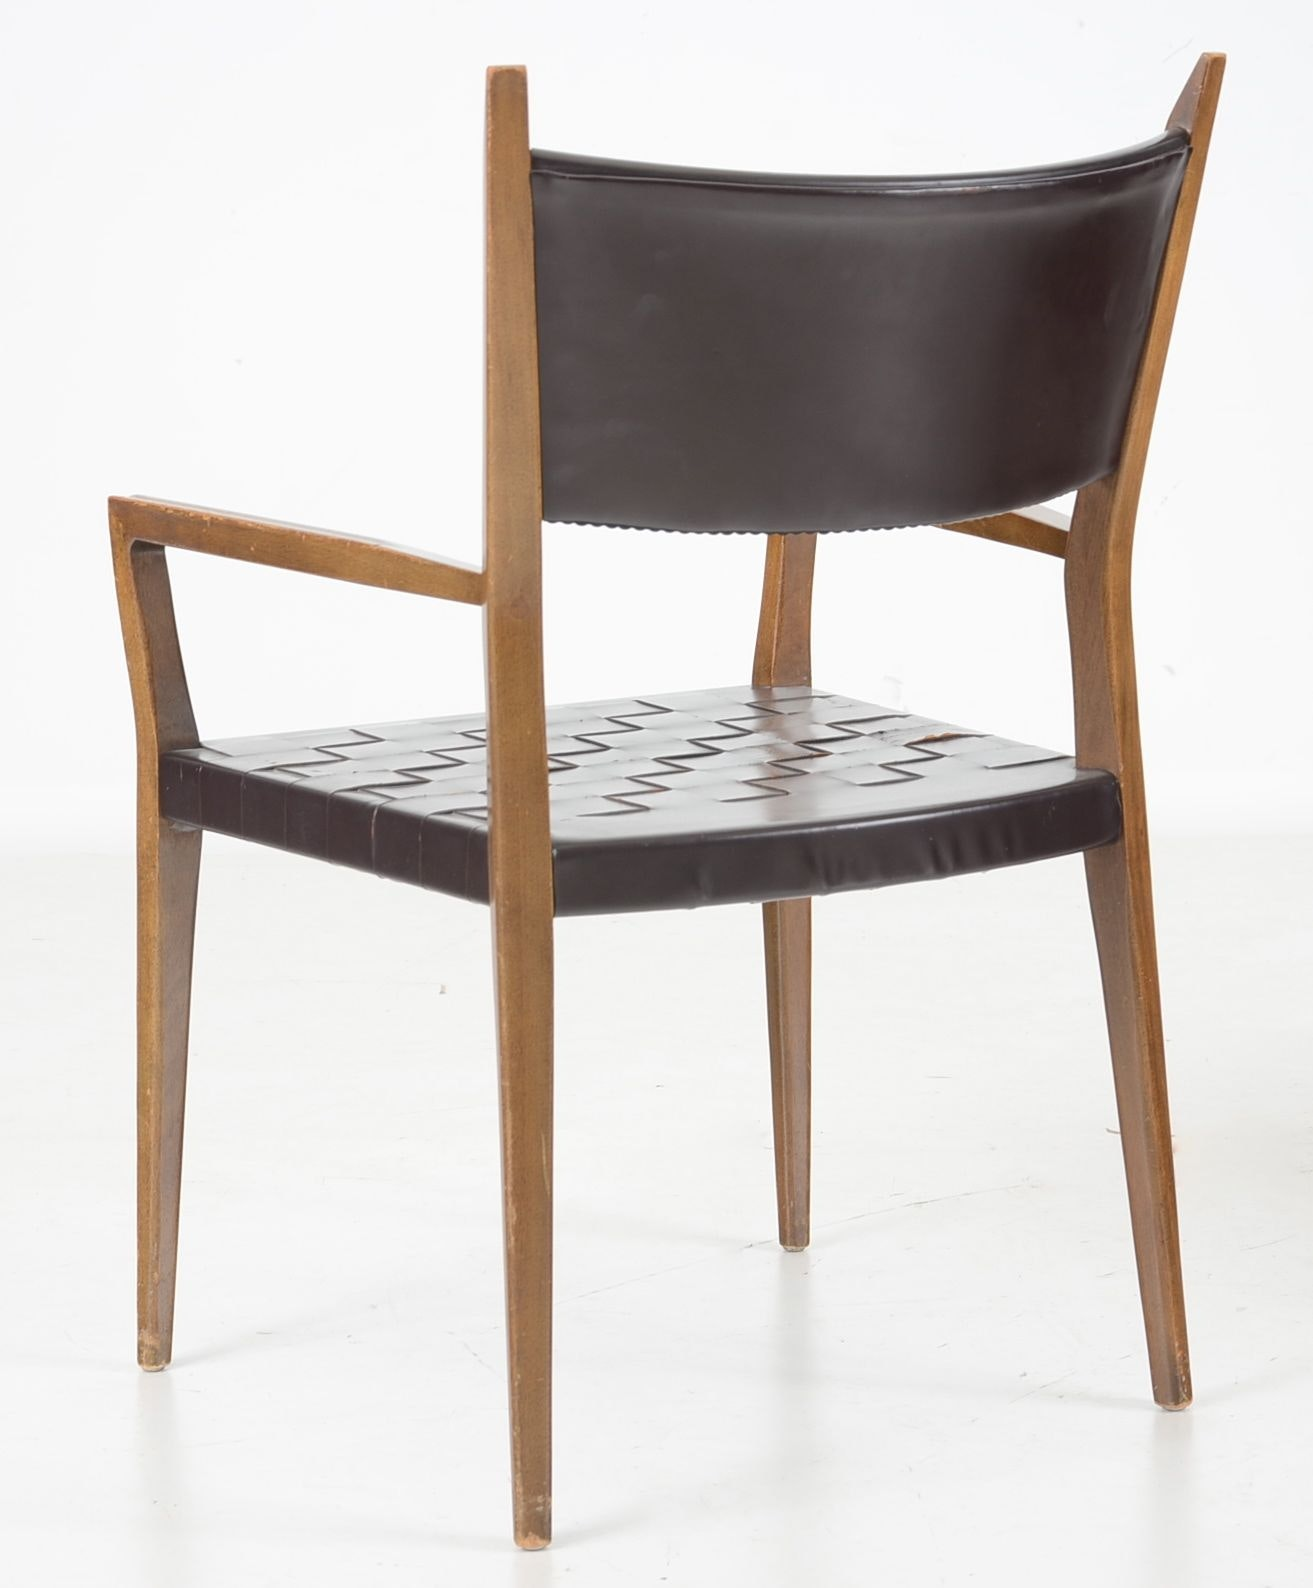 Paul McCobb Dining Room Table and Chairs Set | EBTH